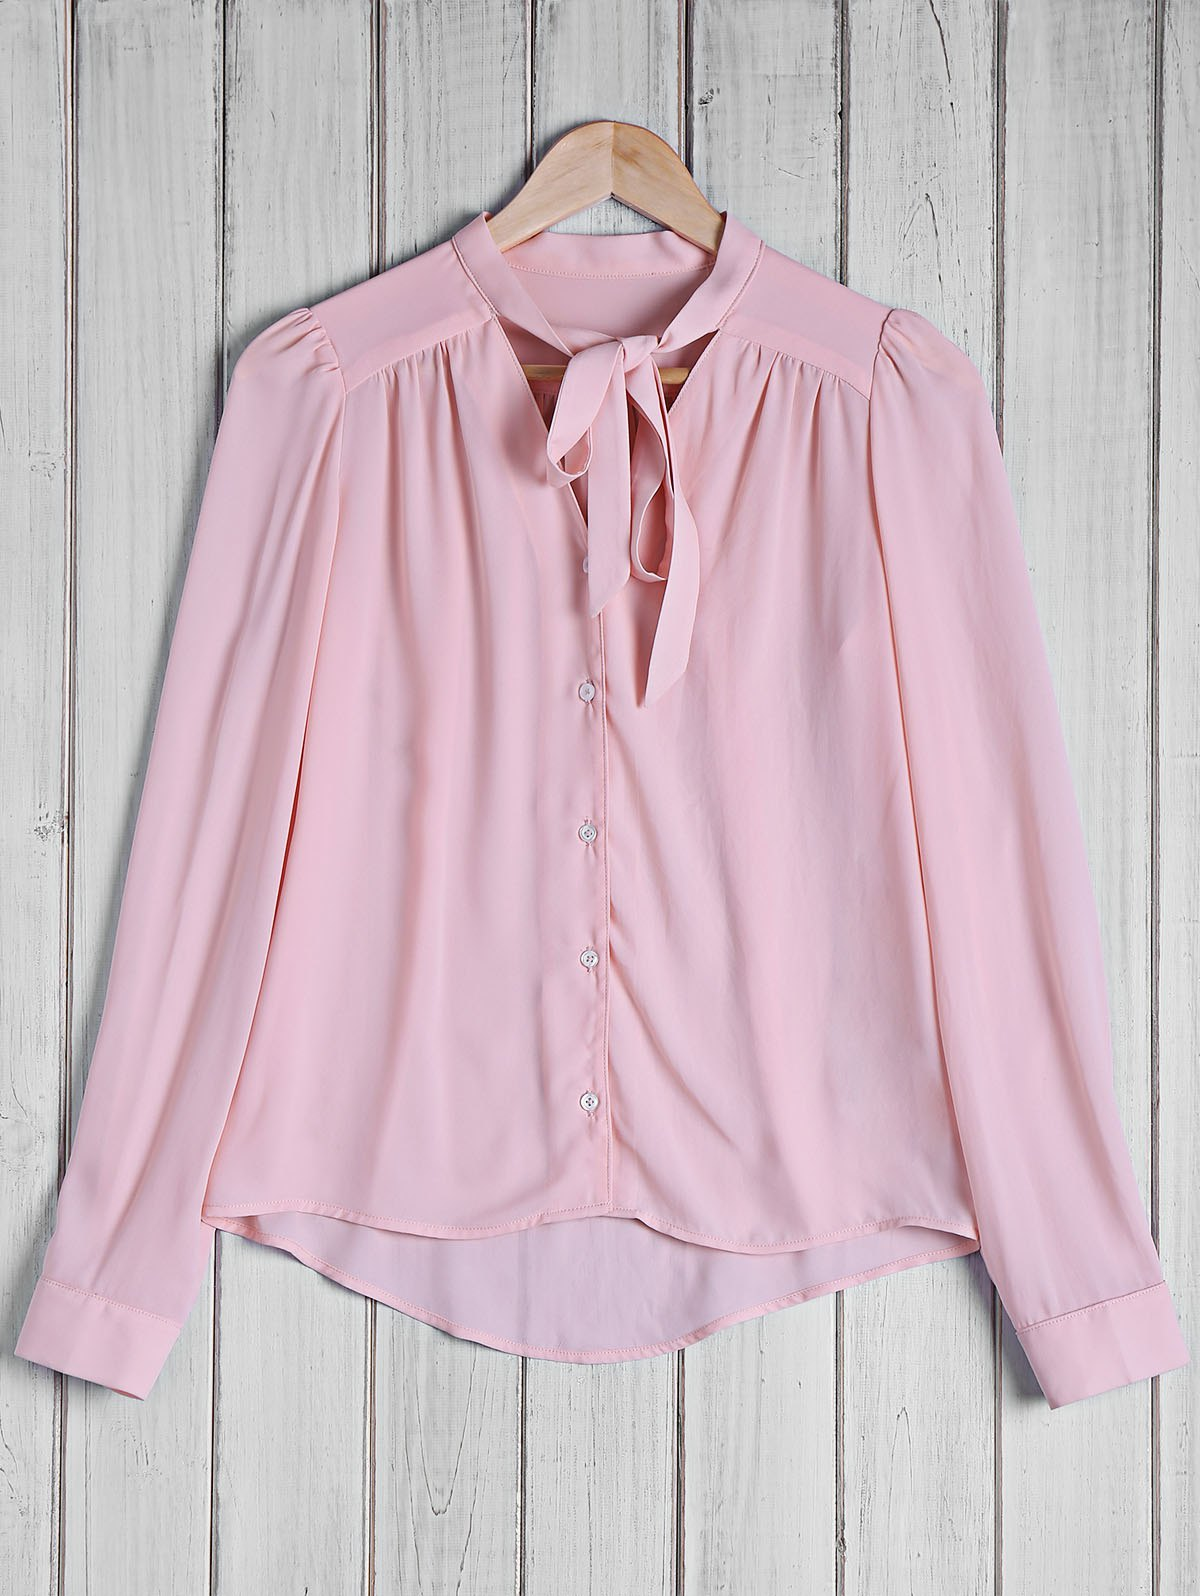 Stylish Women's Bow Tie Collar Solid Color Long Sleeve Blouse - PINK S